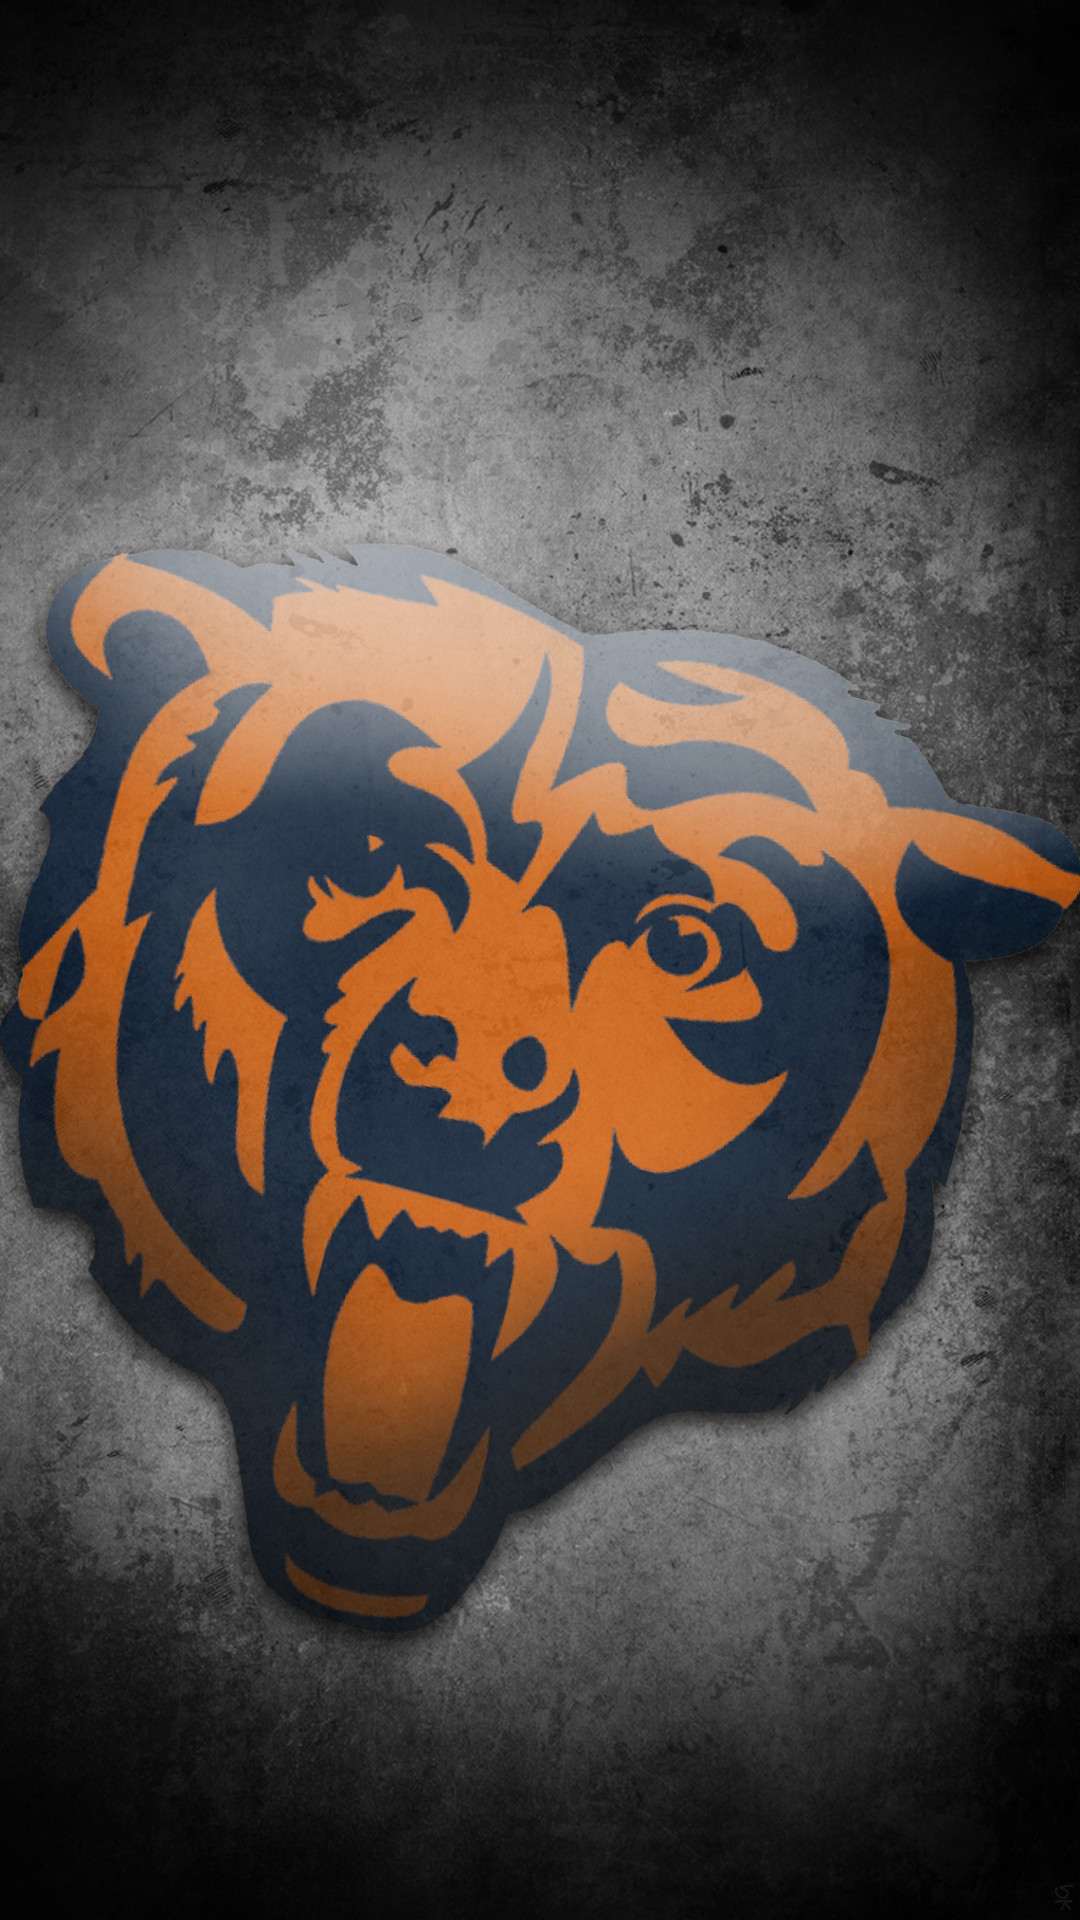 1080x1920 Chicago Bears.png